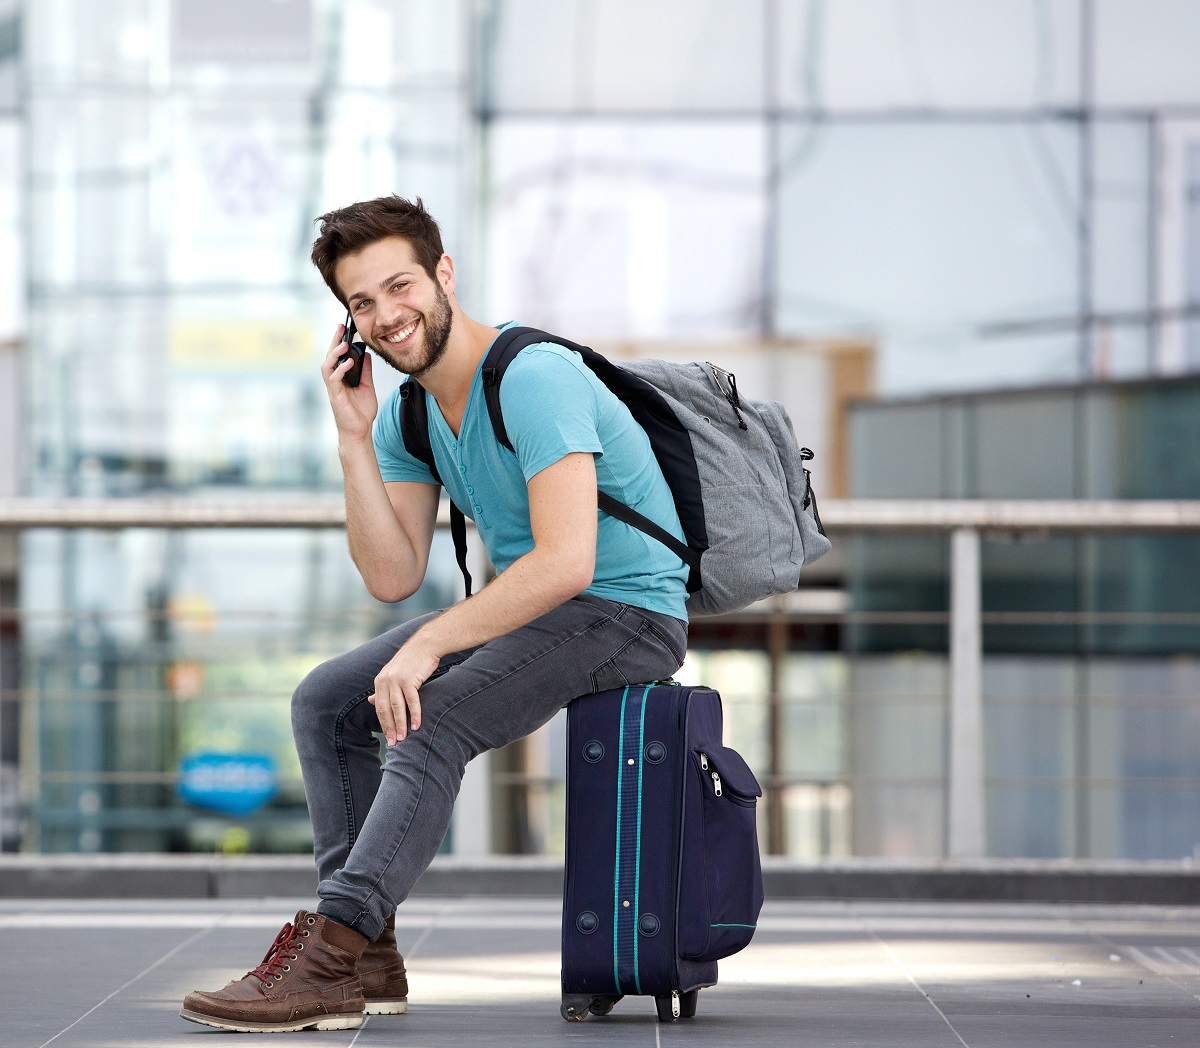 Young man sitting on his suitcase in the airport